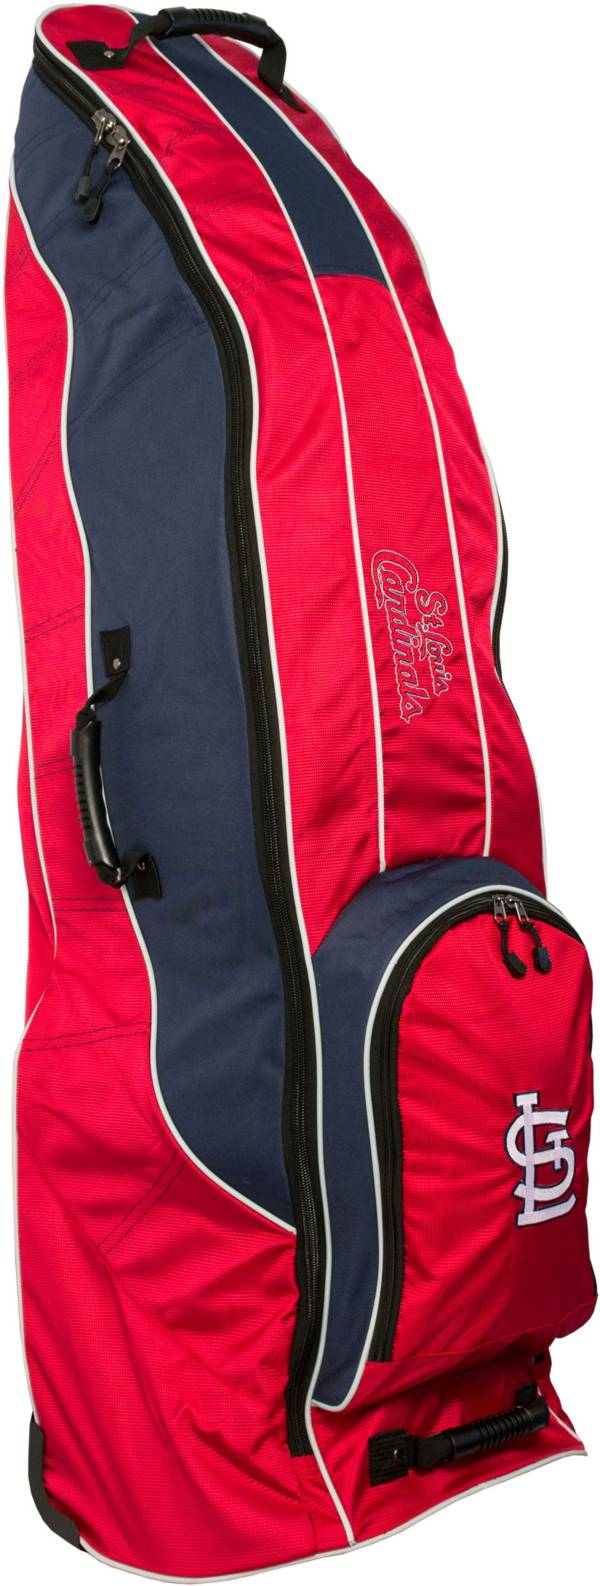 Team Golf St. Louis Cardinals Travel Cover product image